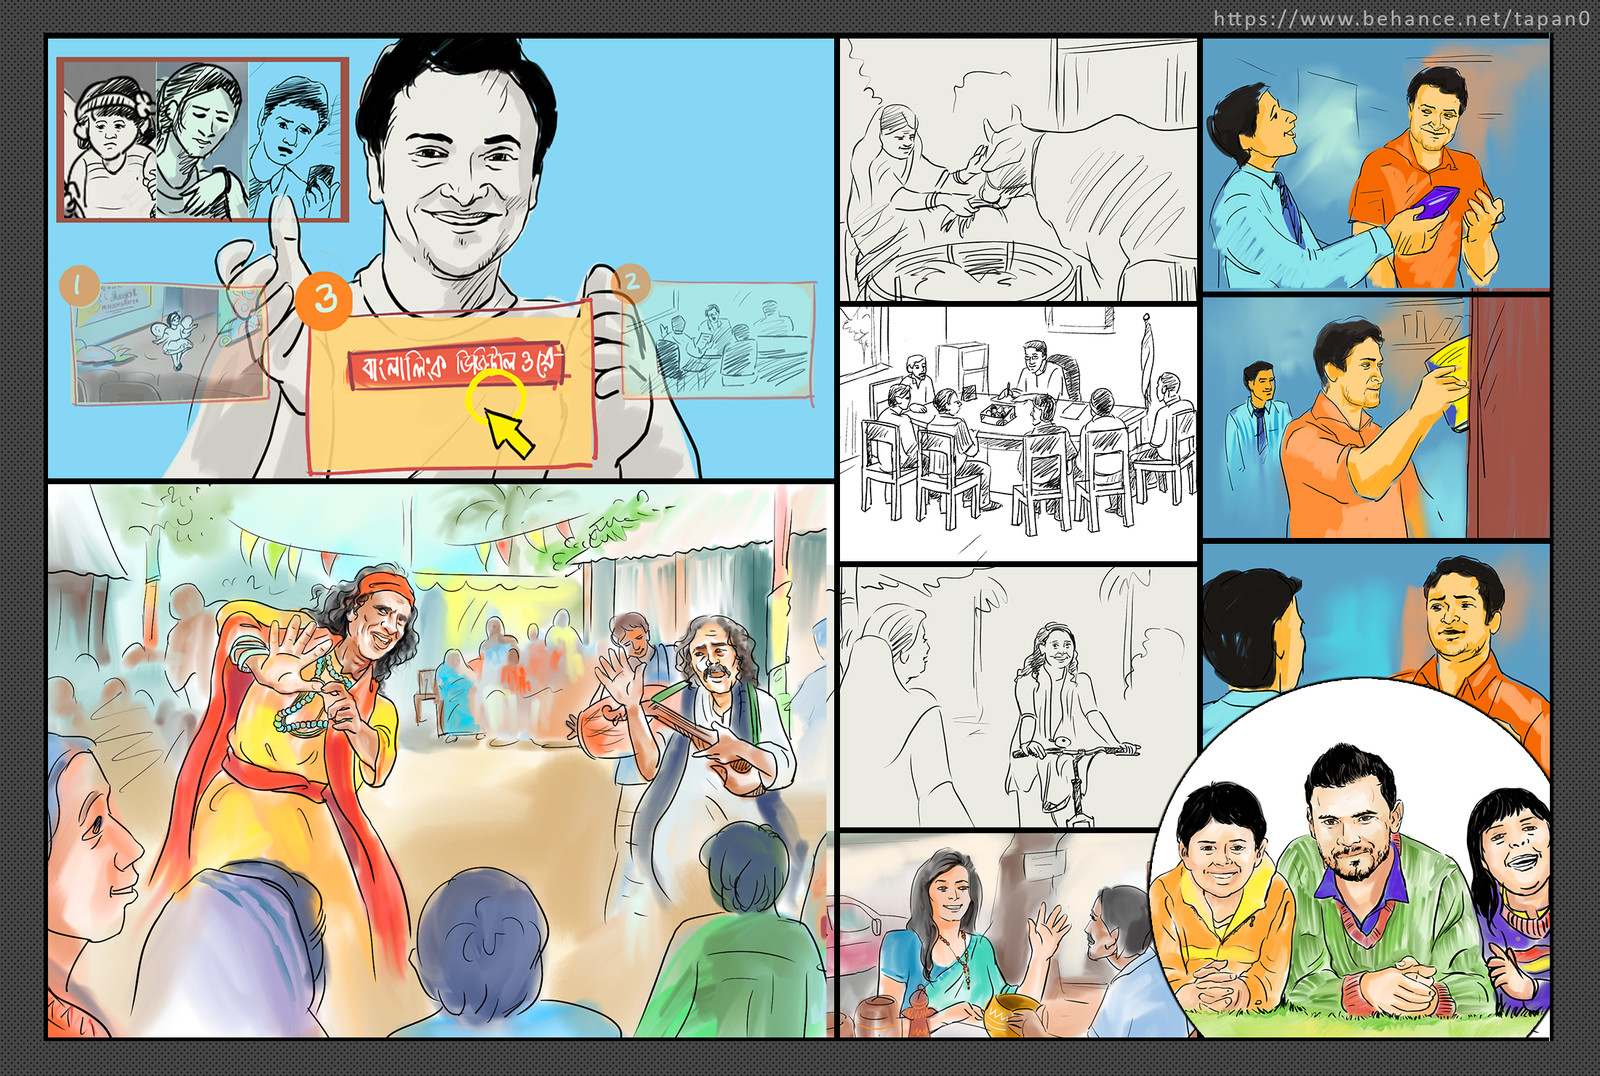 Storyboard sketch for TVC, Commissioned by Bitopi Advertising Ltd.